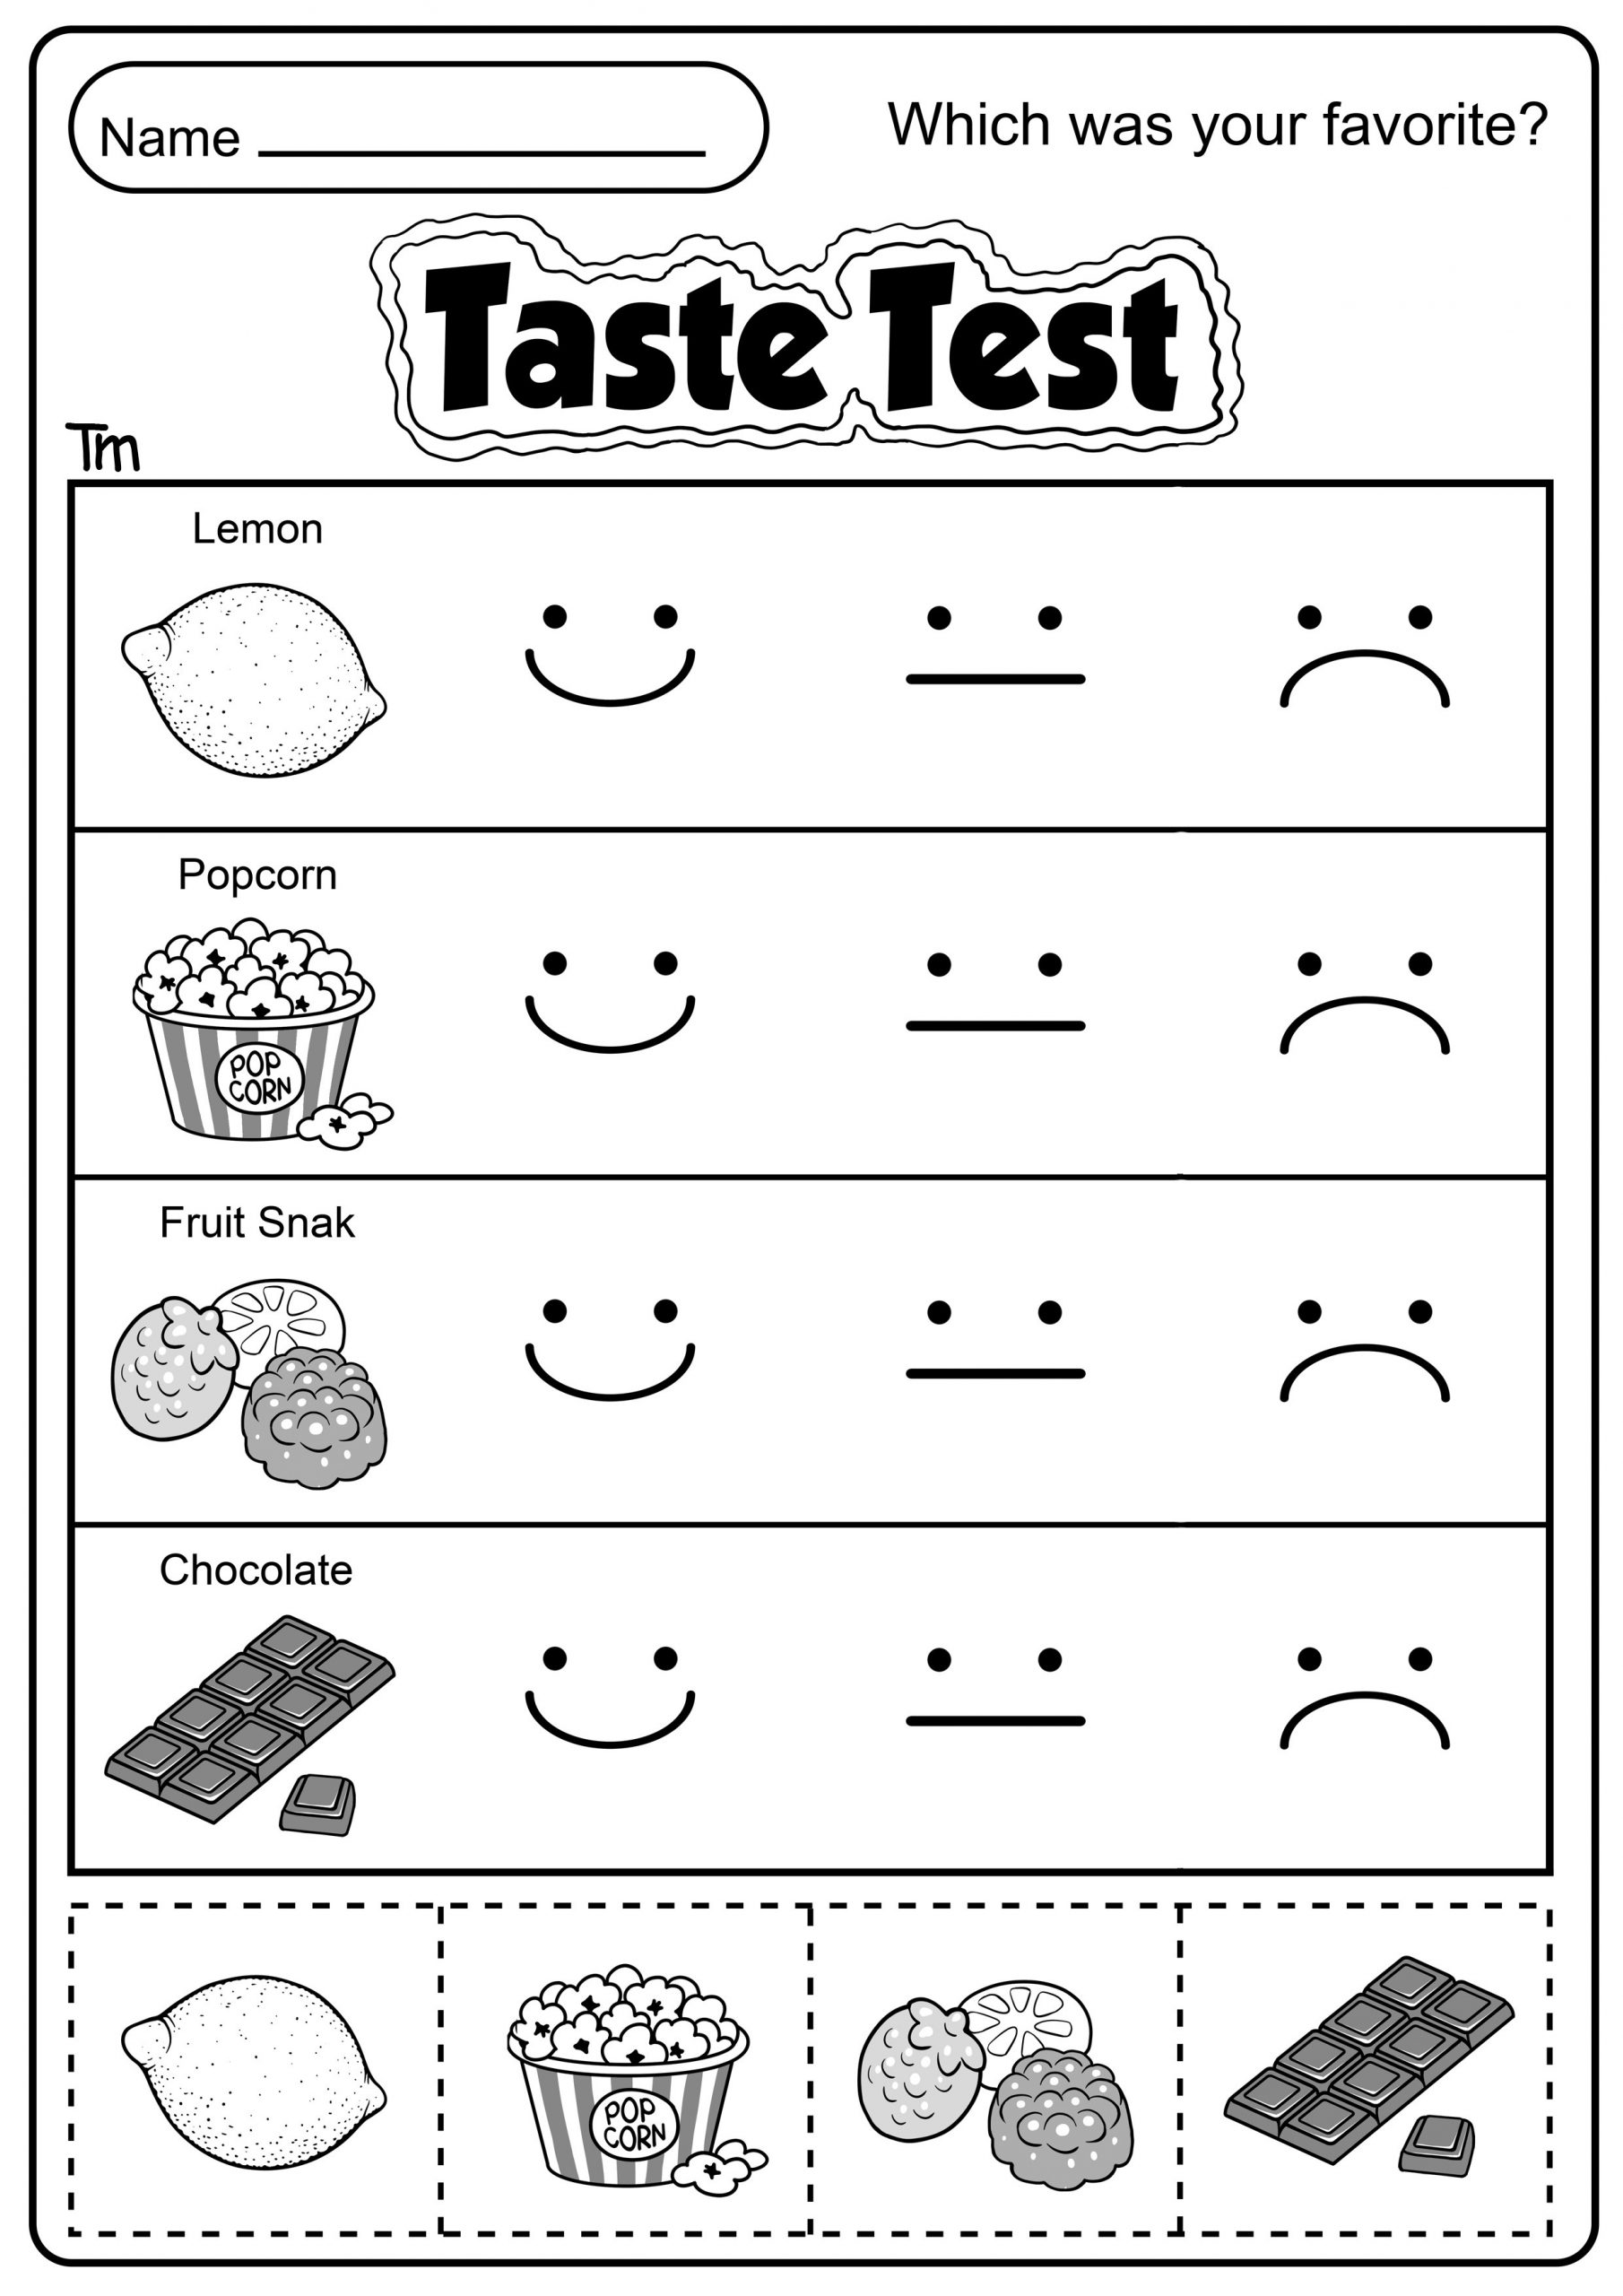 5 Senses Worksheets Preschool the Five Senses Taste Test Teachersmag